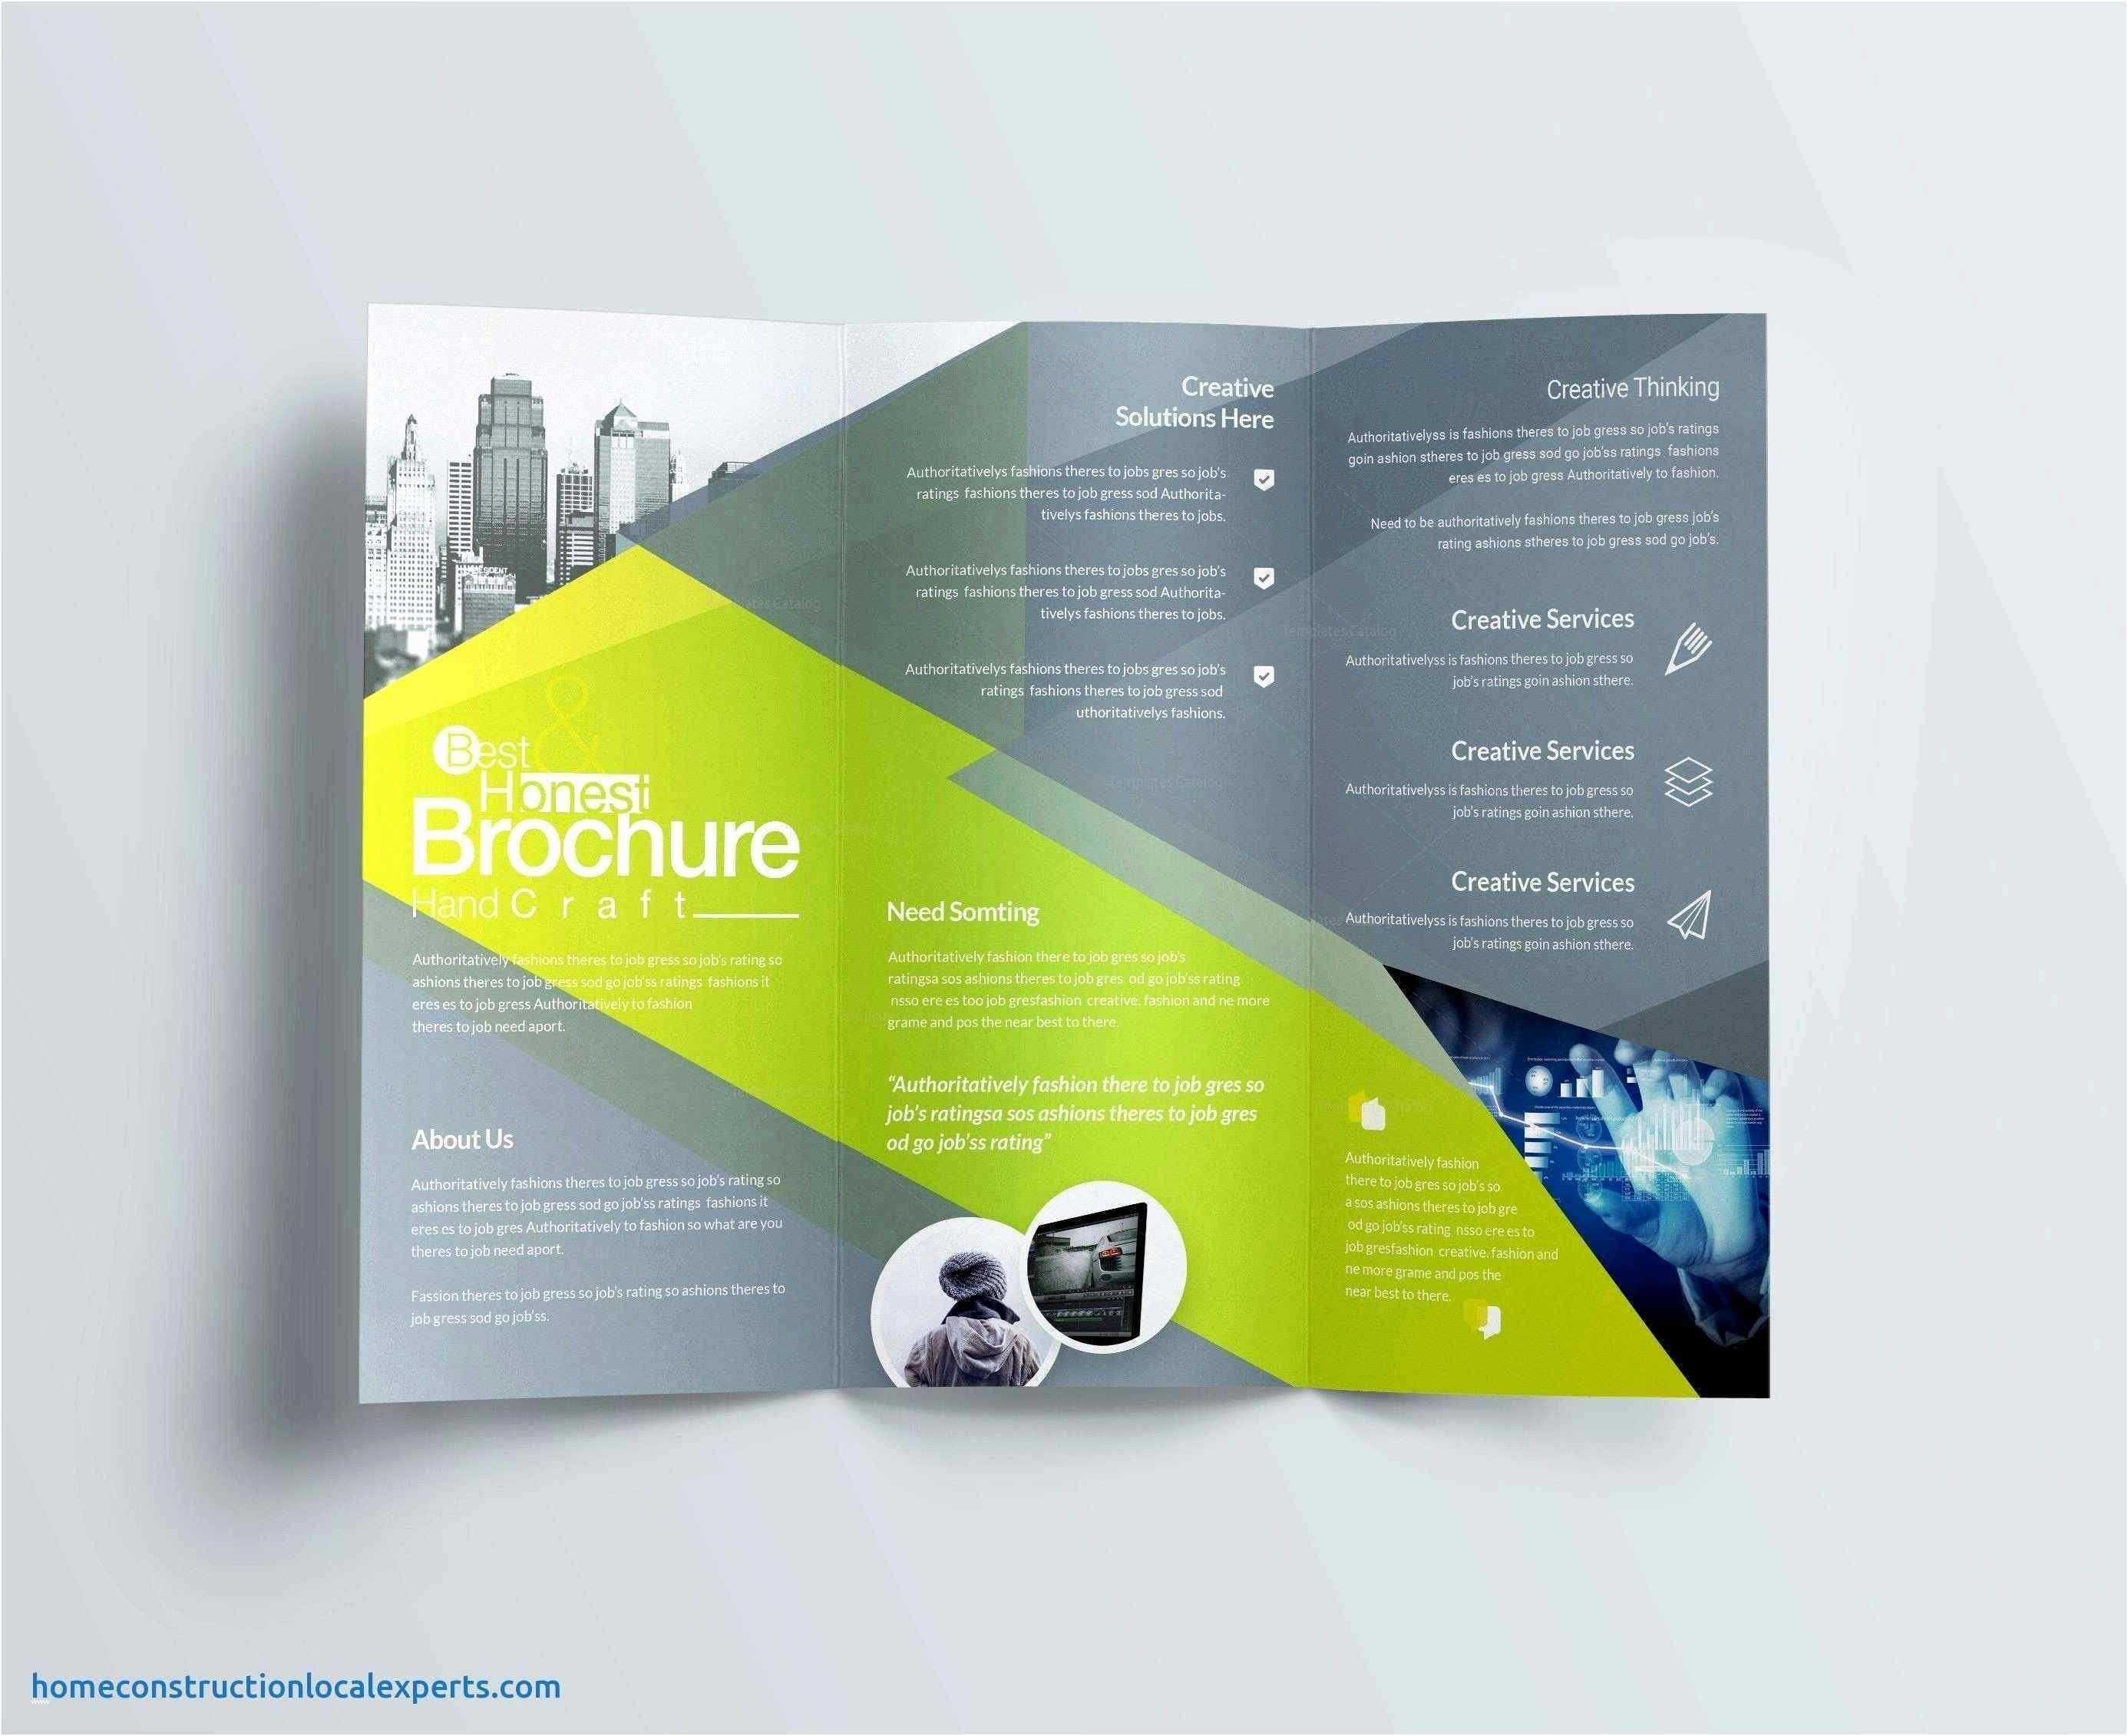 Download Valid Free Templates For Business Cards Printable Throughout Creative Brochure Templates Free Download